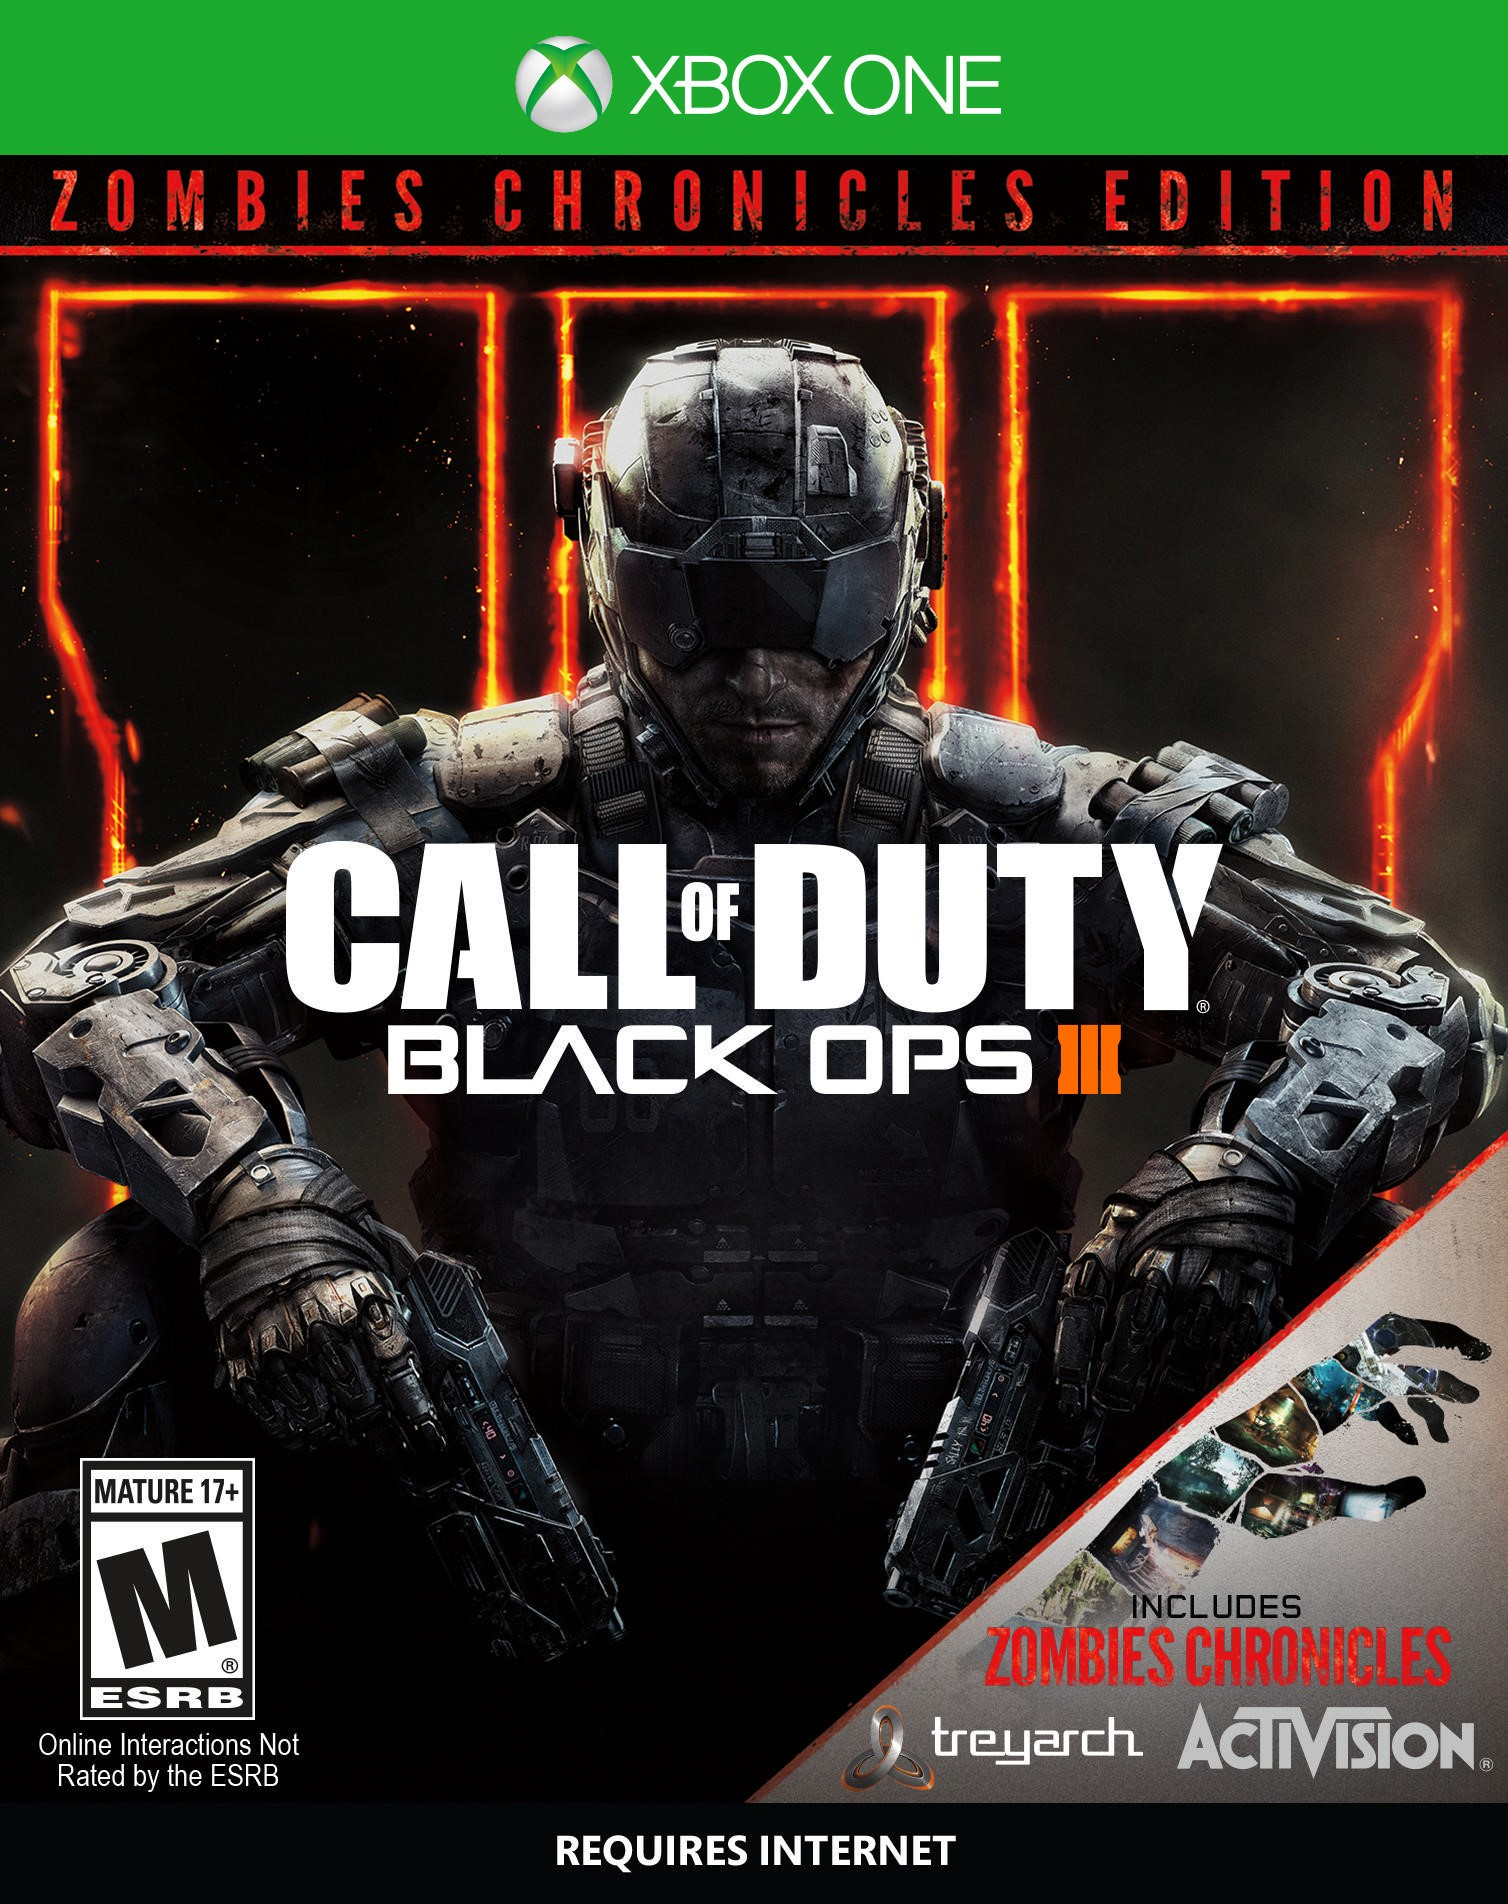 ✅ Call of Duty Black Ops III: - Zombies Chronicles XBOX